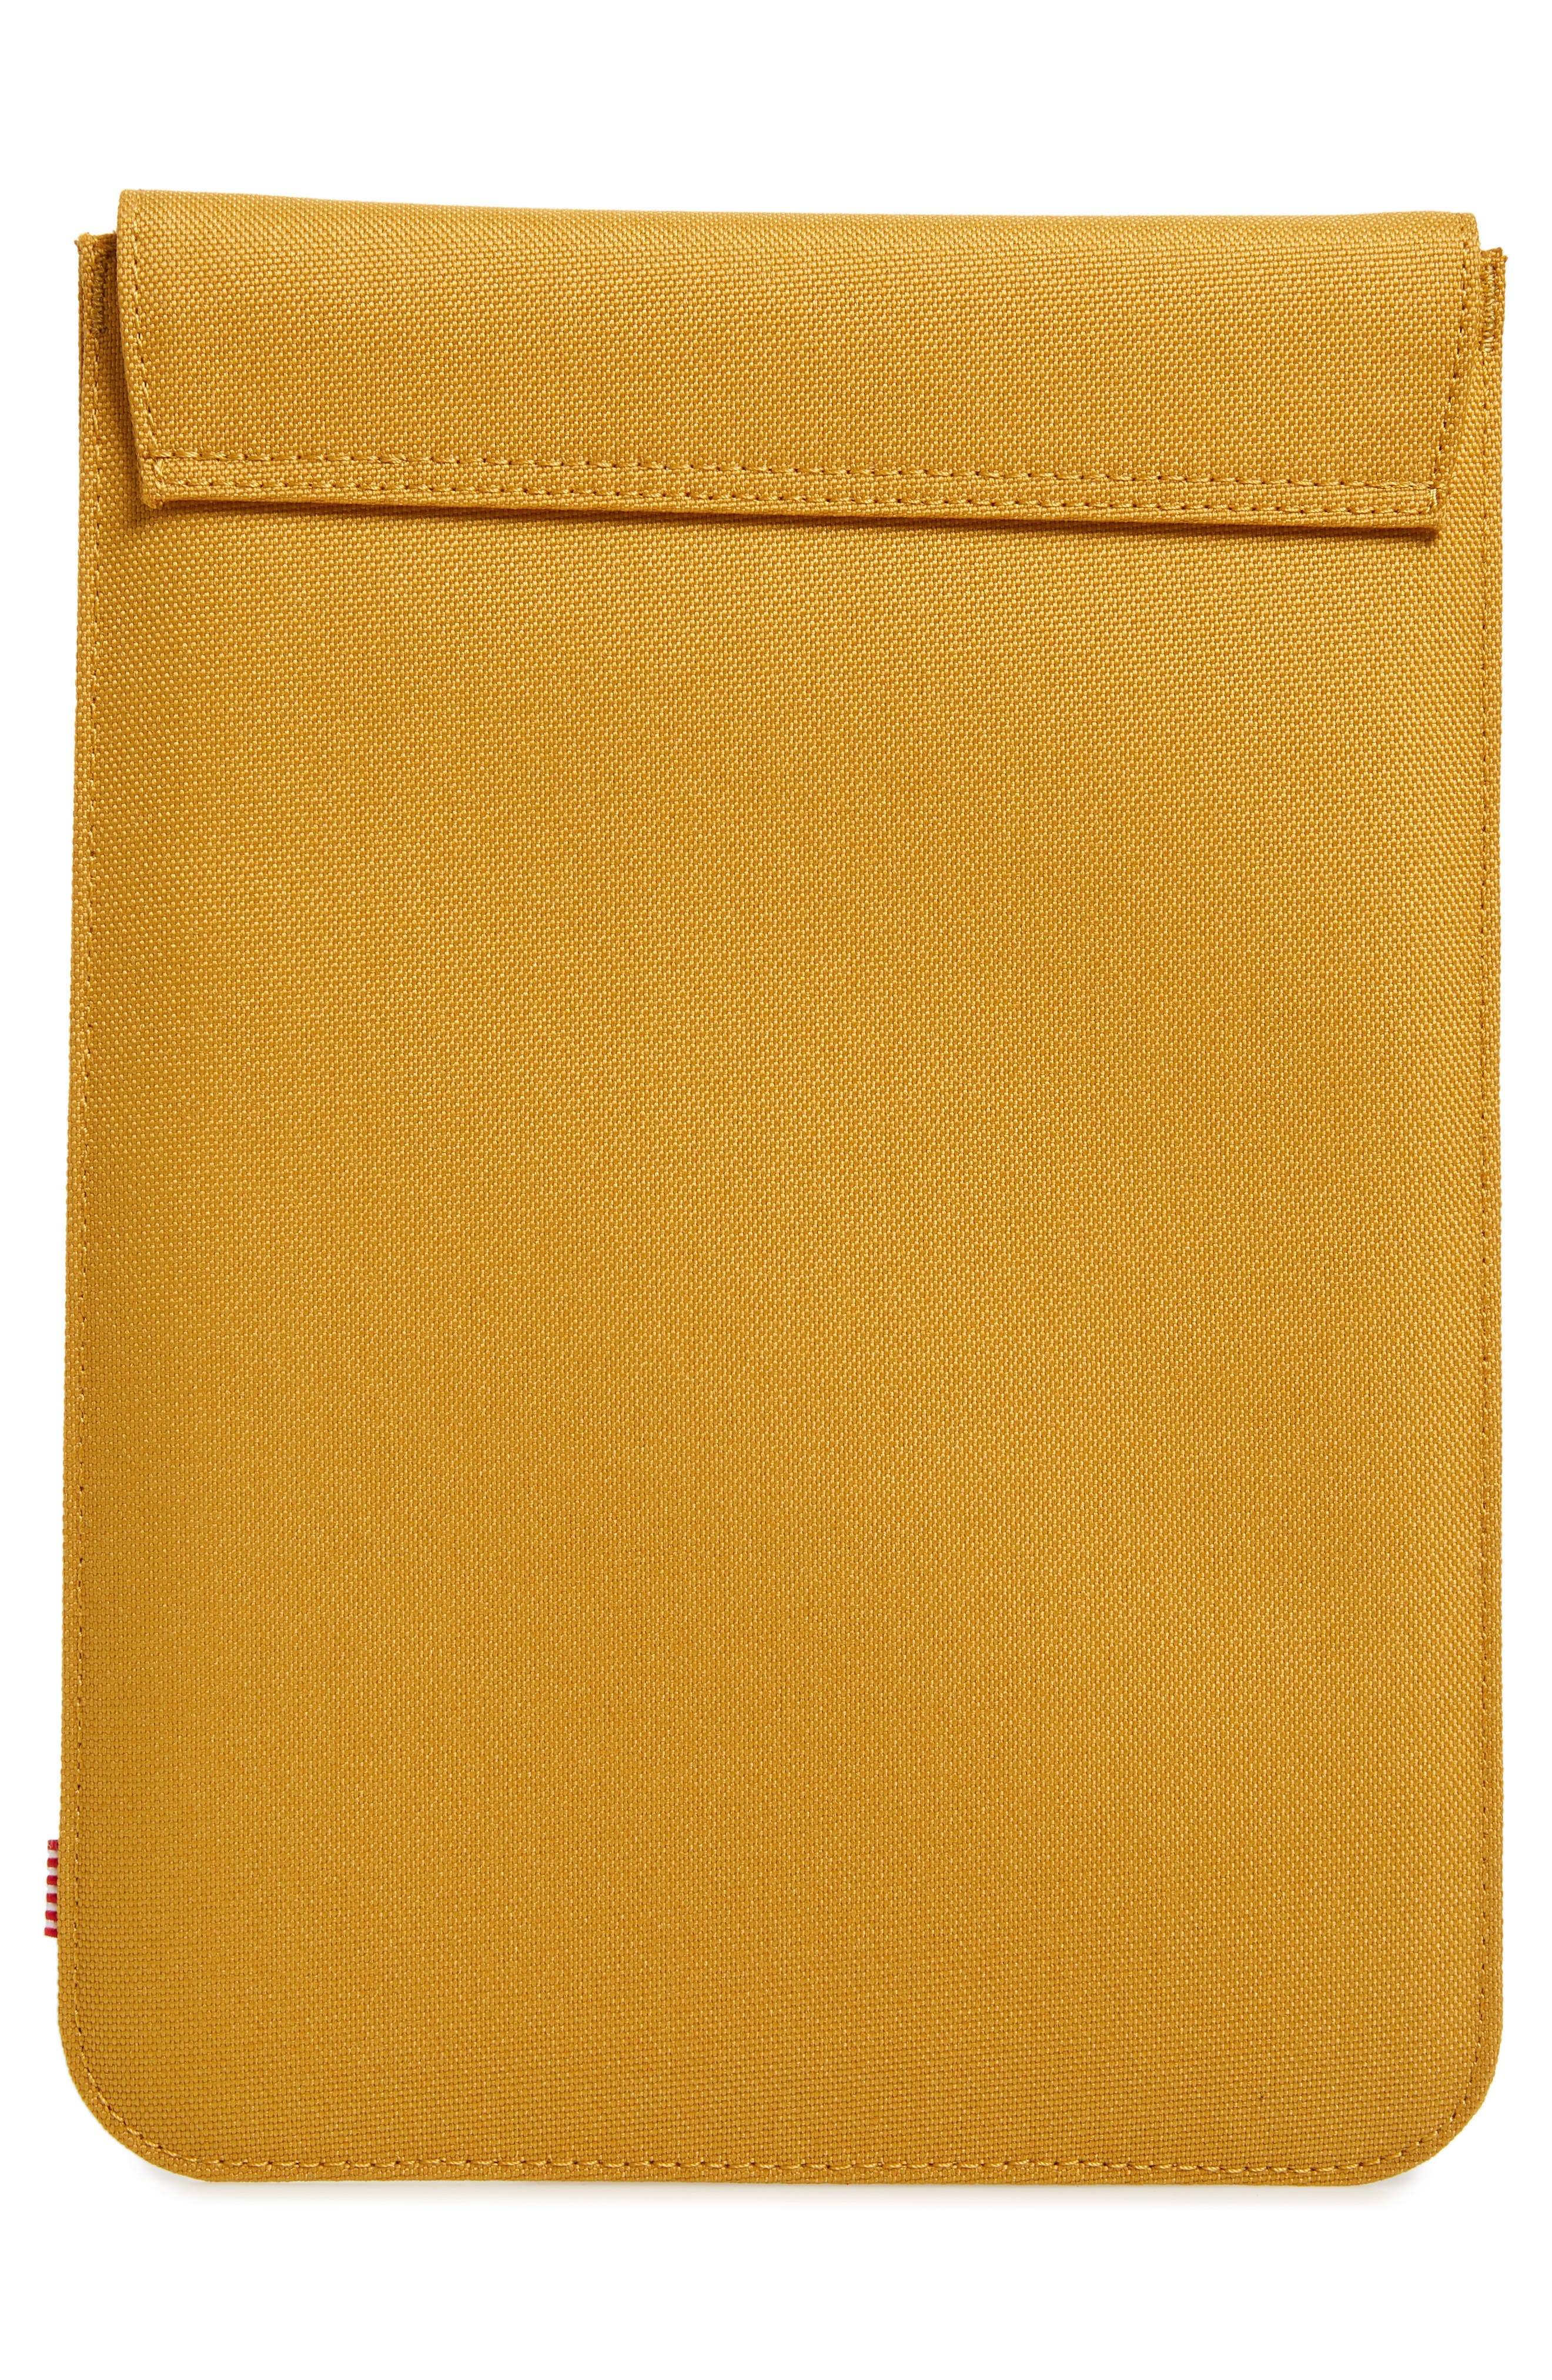 HERSCHEL SUPPLY CO.,                             Spokane iPad Air Canvas Sleeve,                             Alternate thumbnail 4, color,                             ARROWWOOD